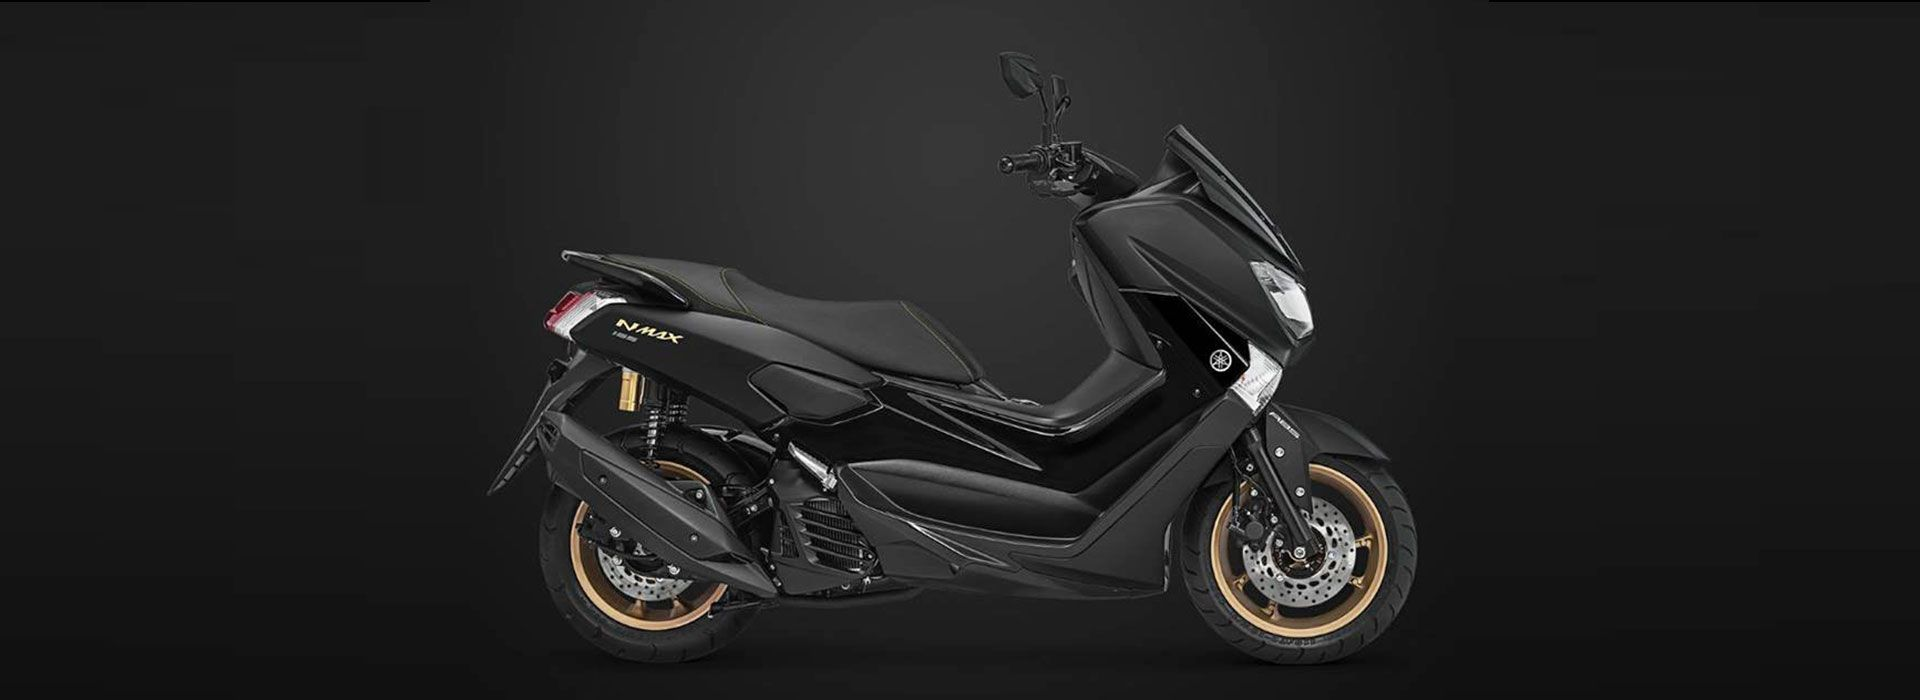 Yamaha NMAX 155 Model 2018 - Matte Black